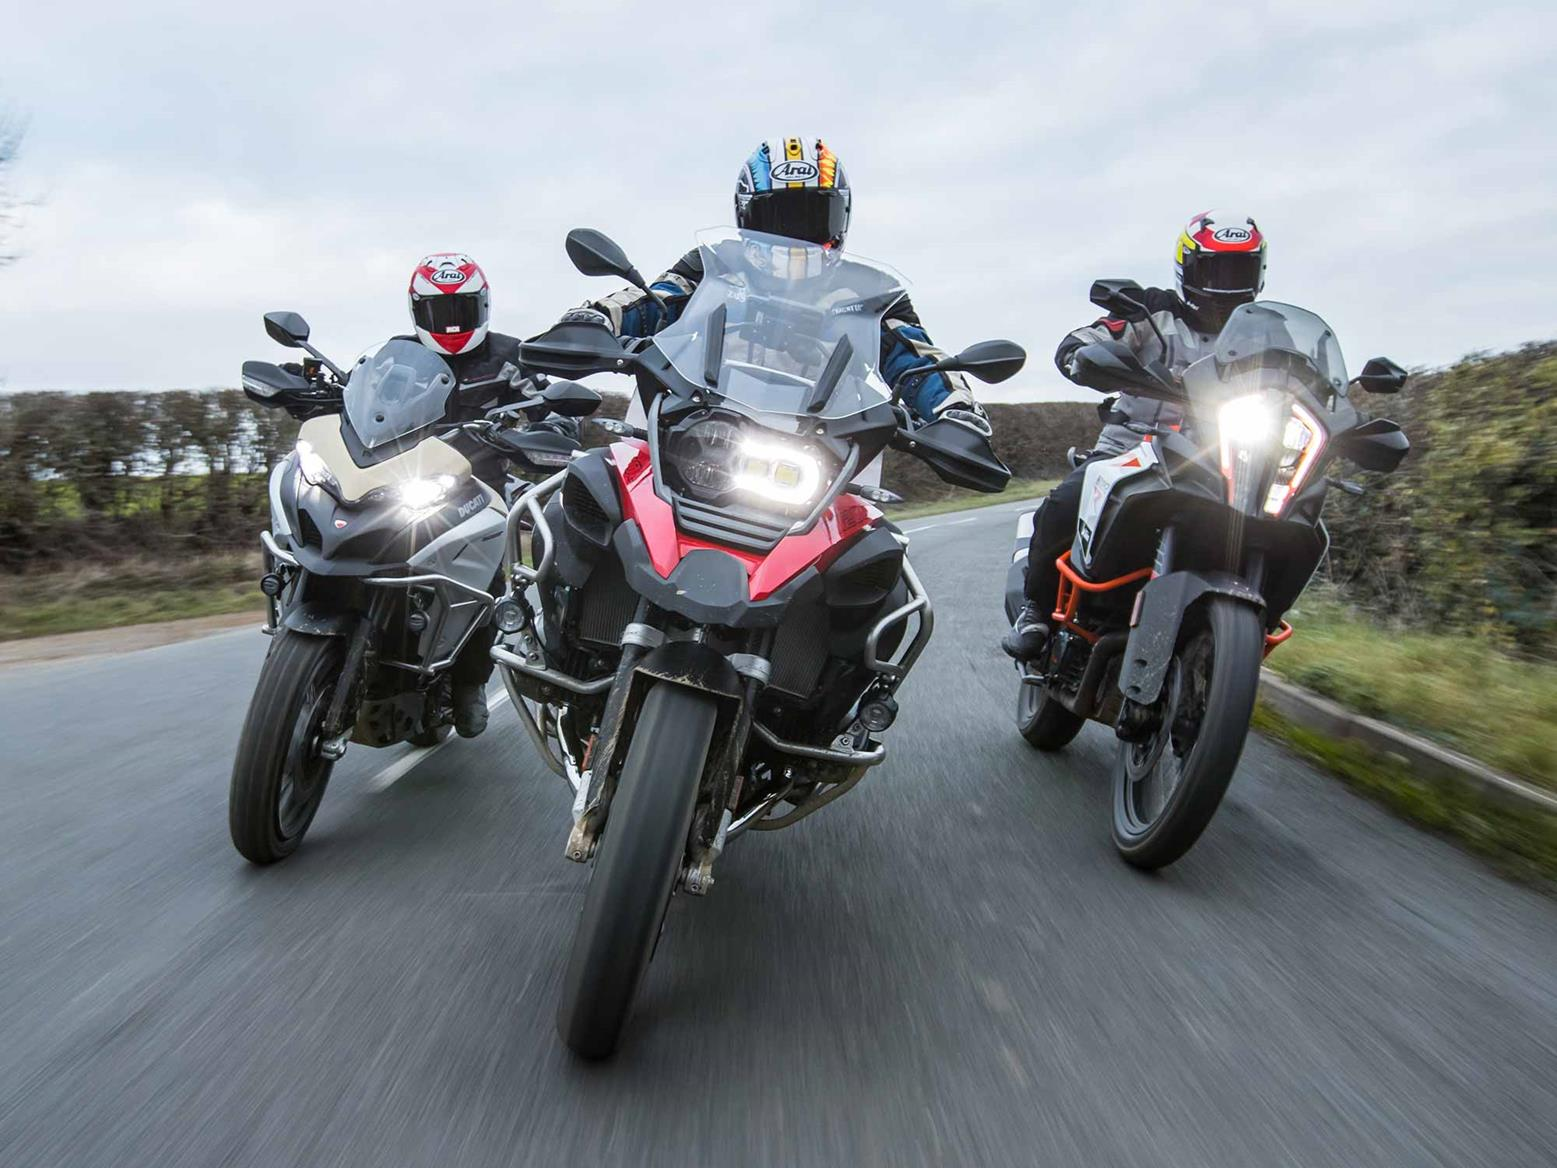 BMW R1200GS Adventure and its closest rivals